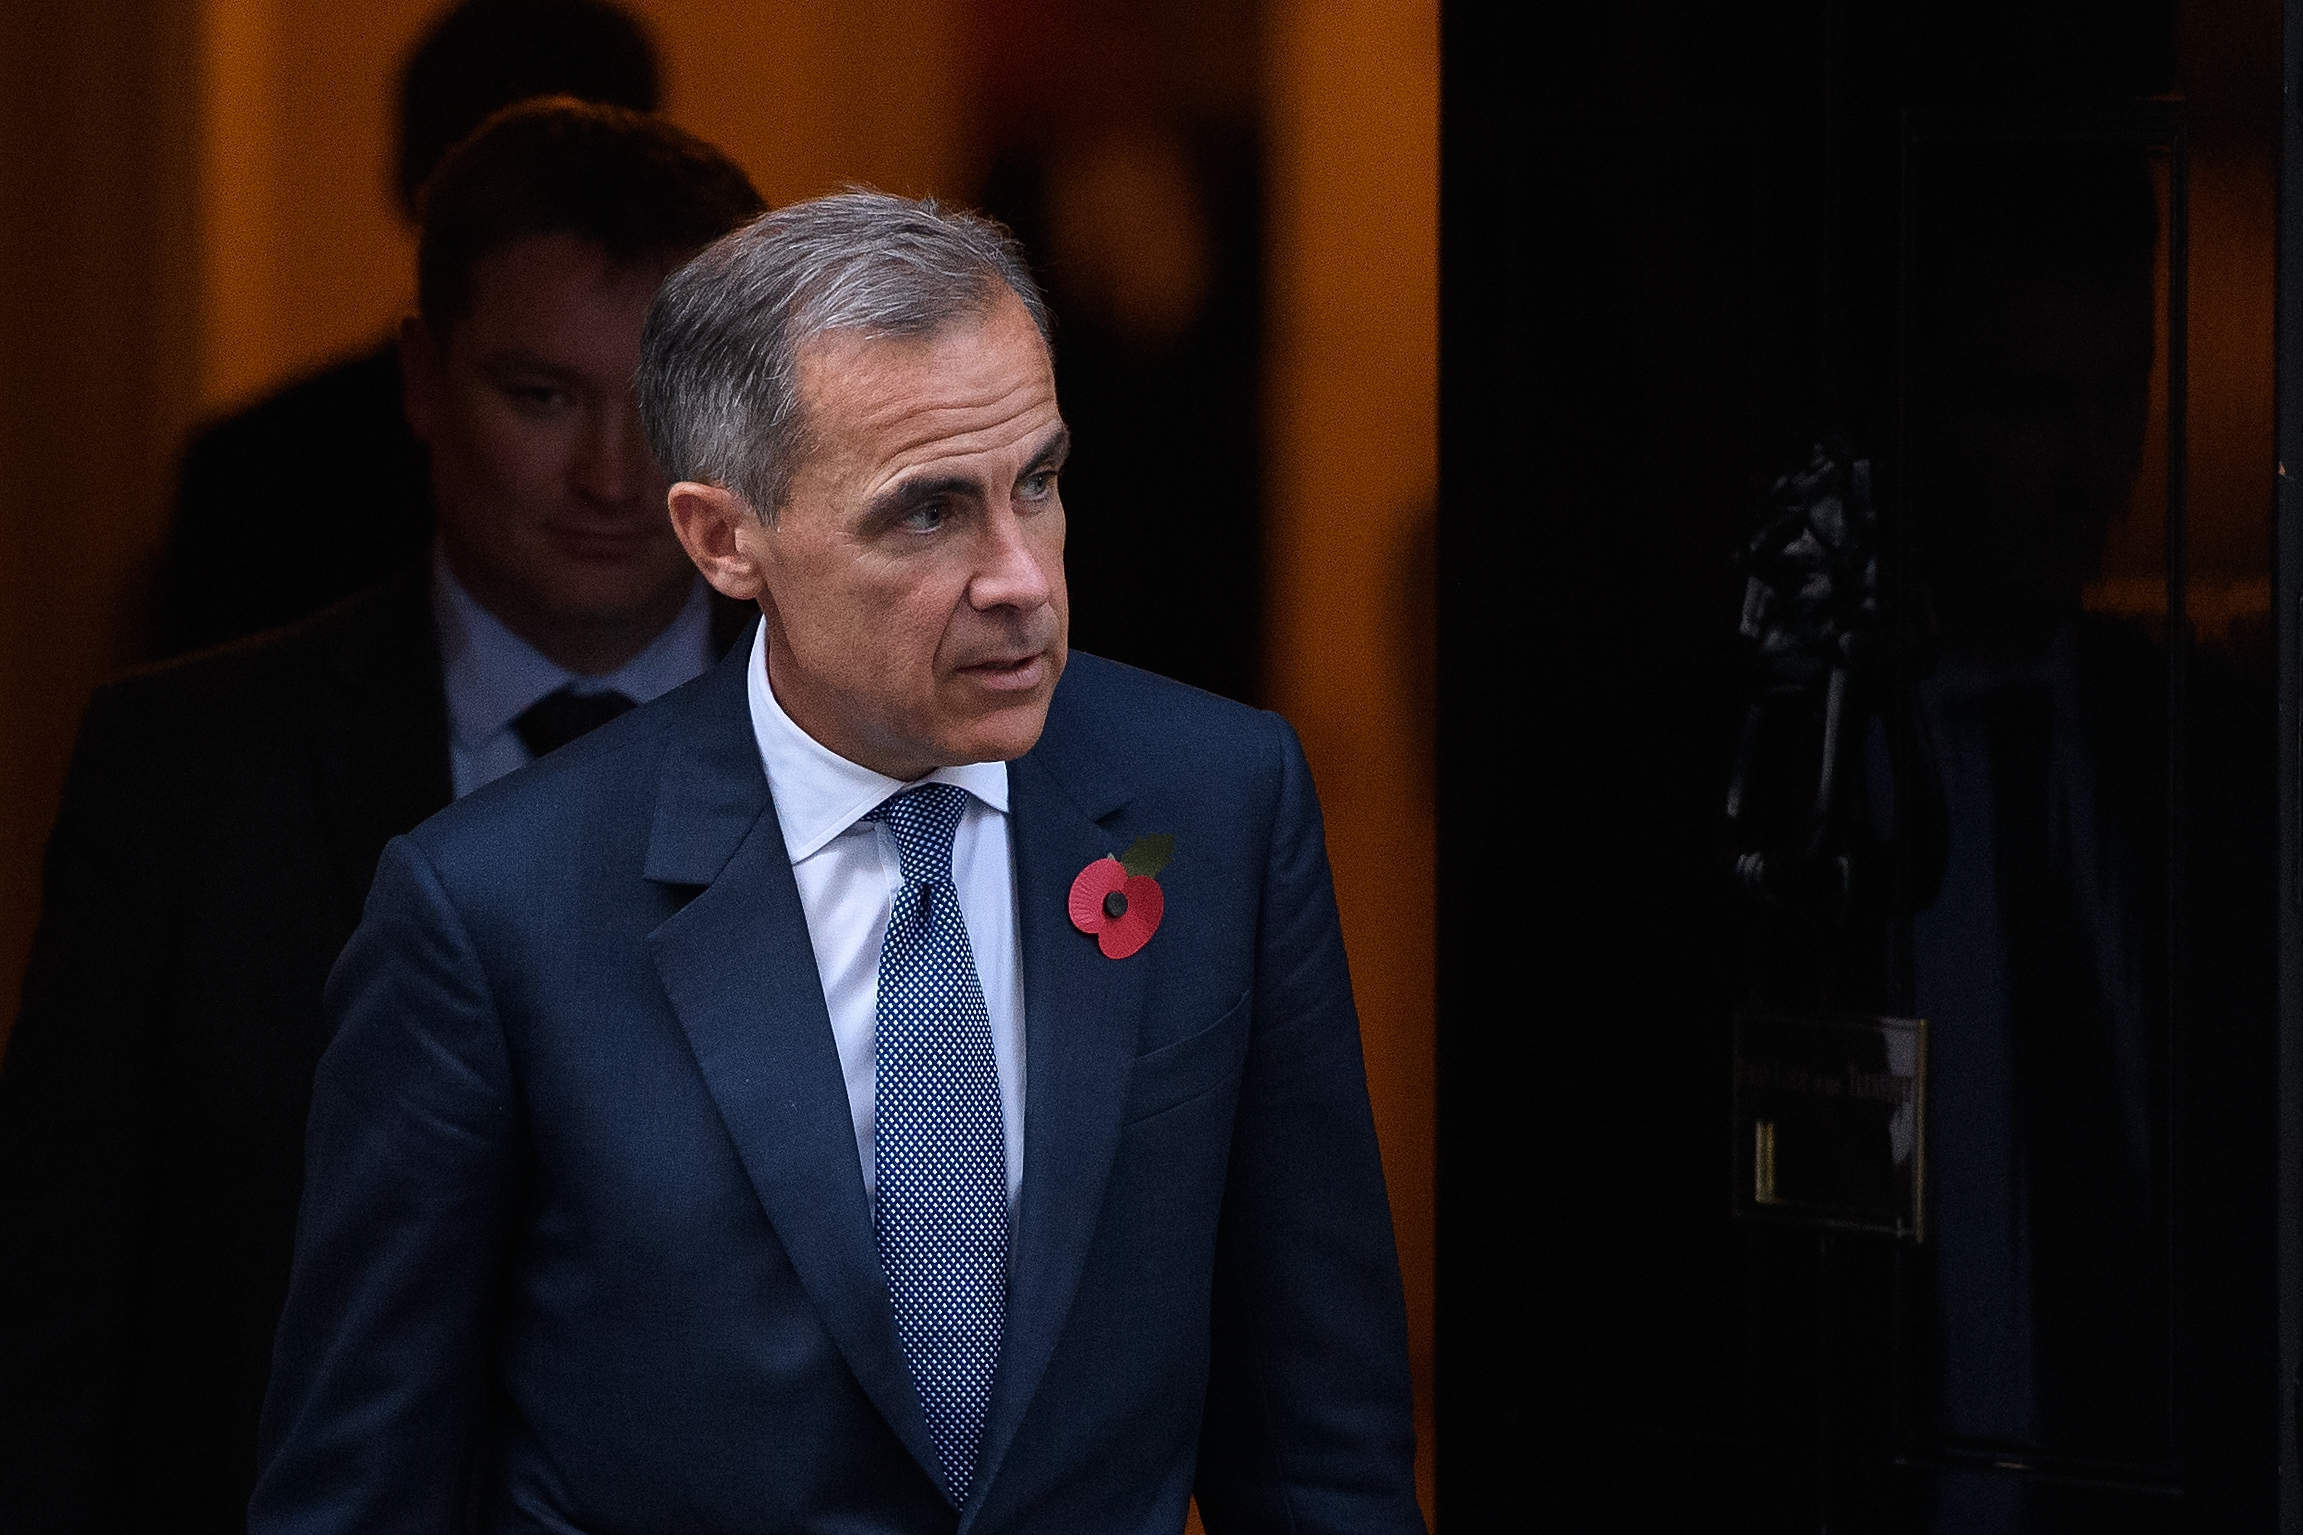 The Bank of England's critics have got one thing right